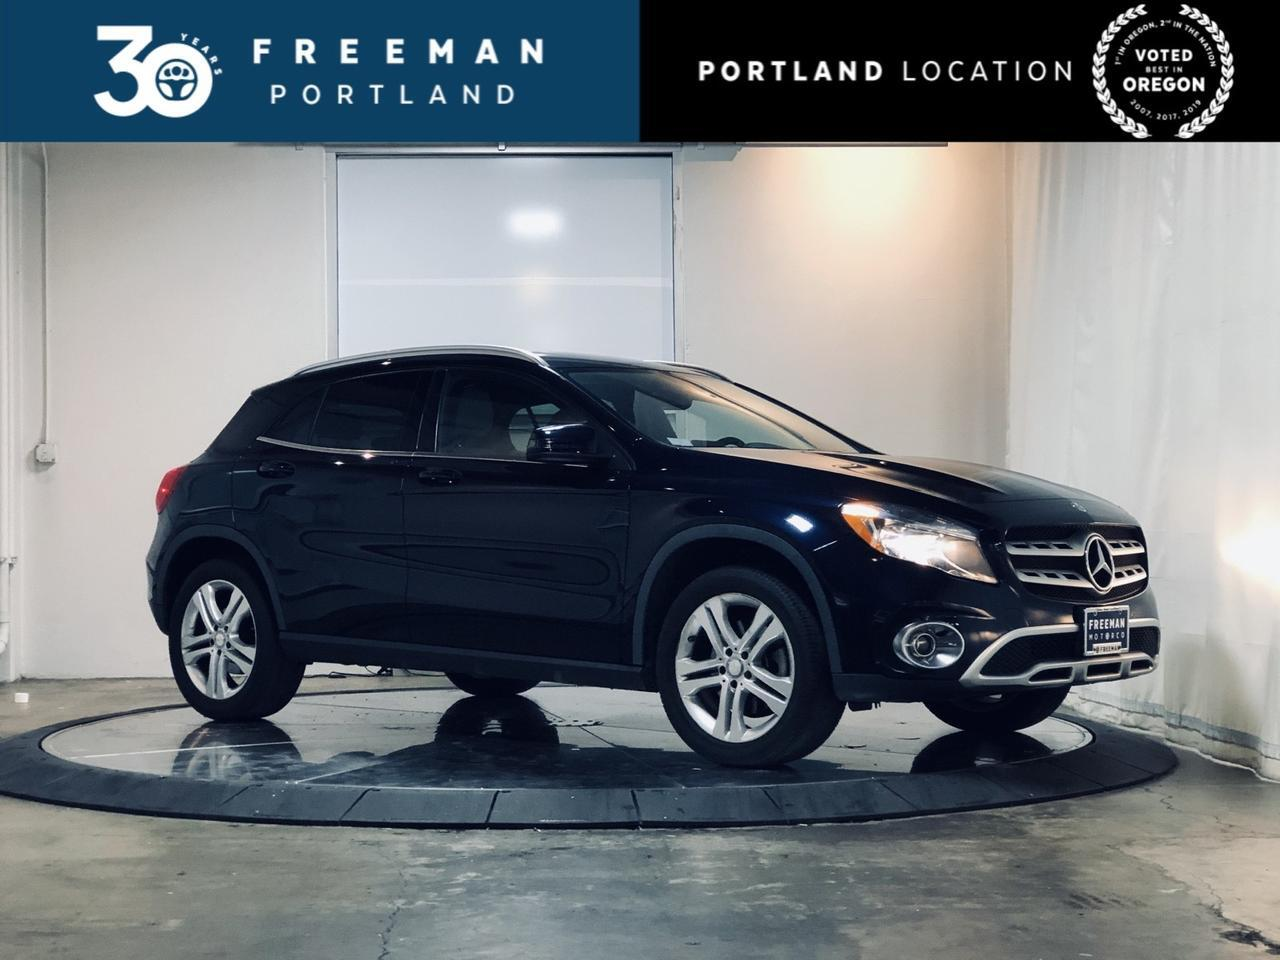 2018 Mercedes-Benz GLA 250 4MATIC Heated Seats Blind Spot Assist Portland OR